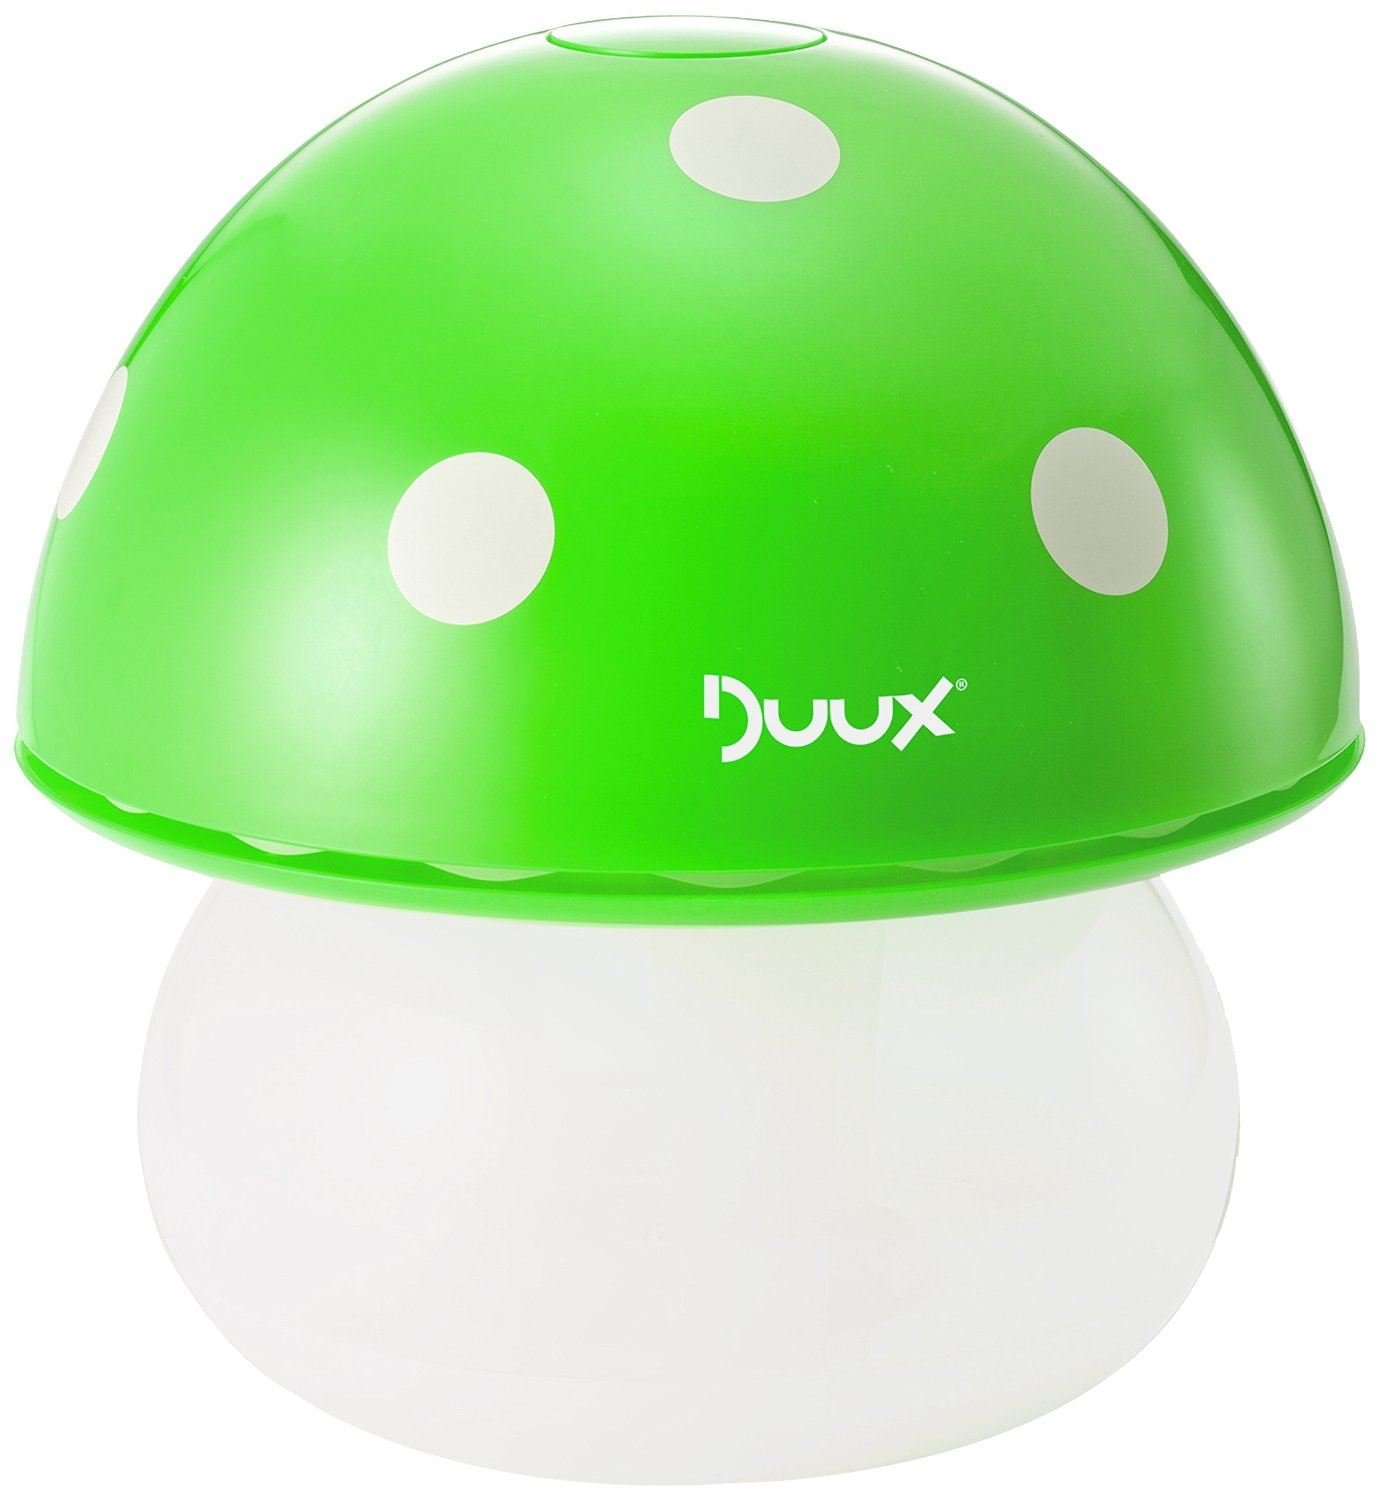 Duux Ultrasonic Air Humidifier - Mushroom Green (Dispatched From UK) by Duux